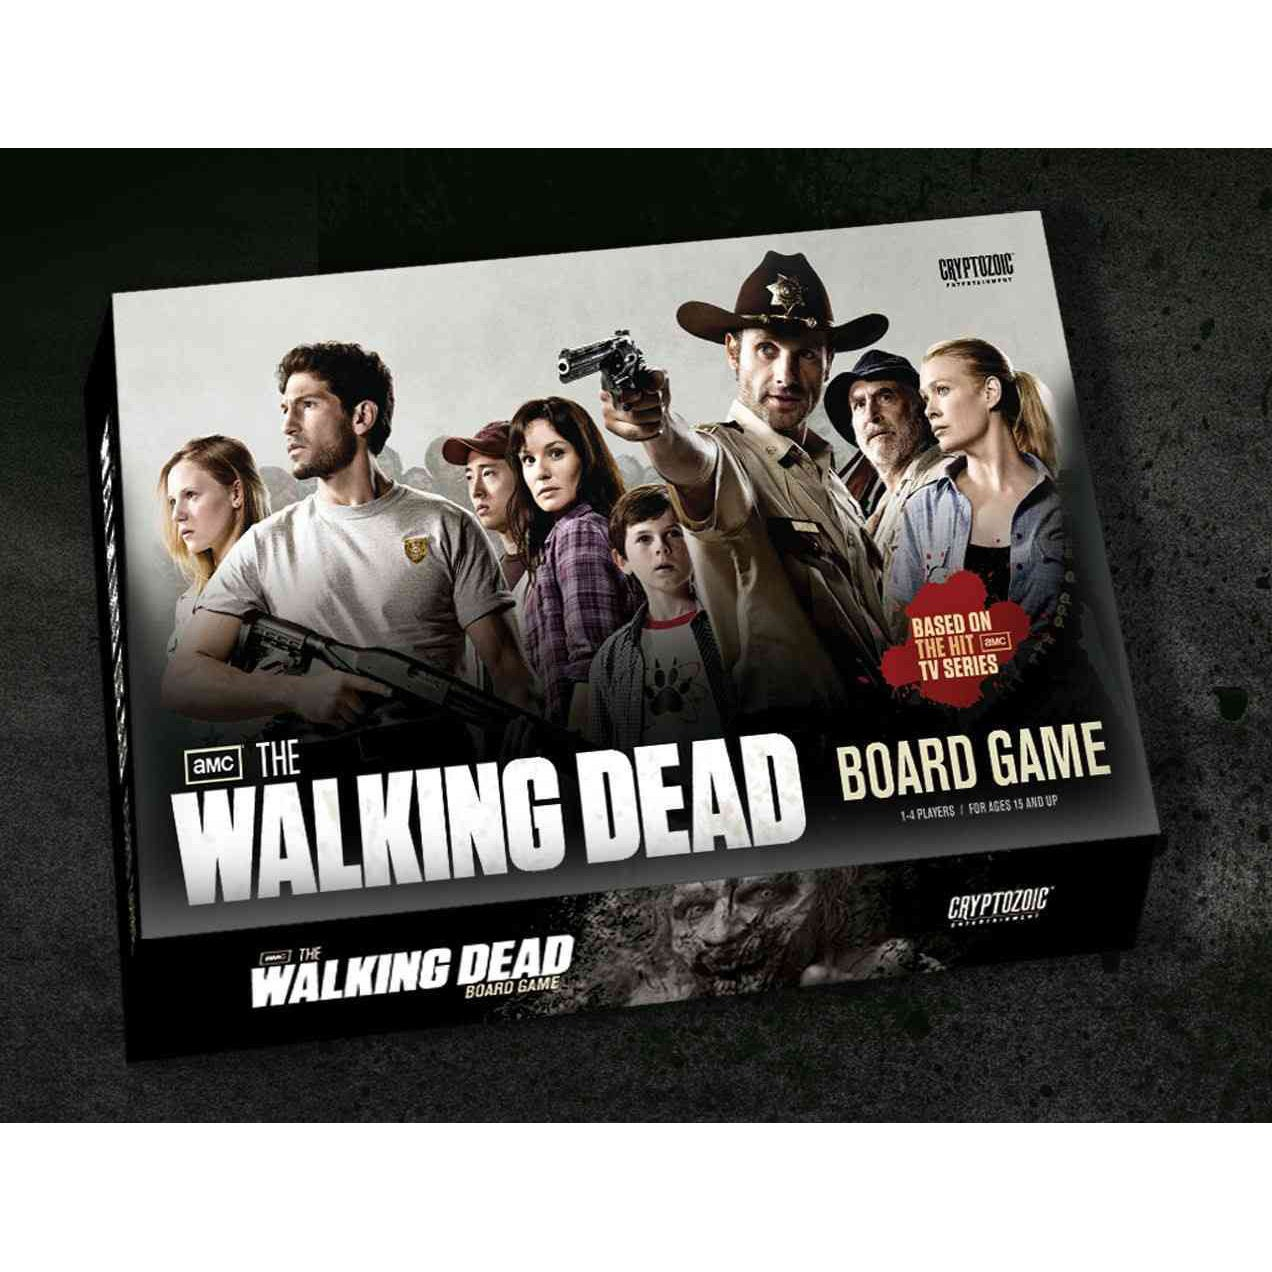 The Walking Dead Board Game (Game)